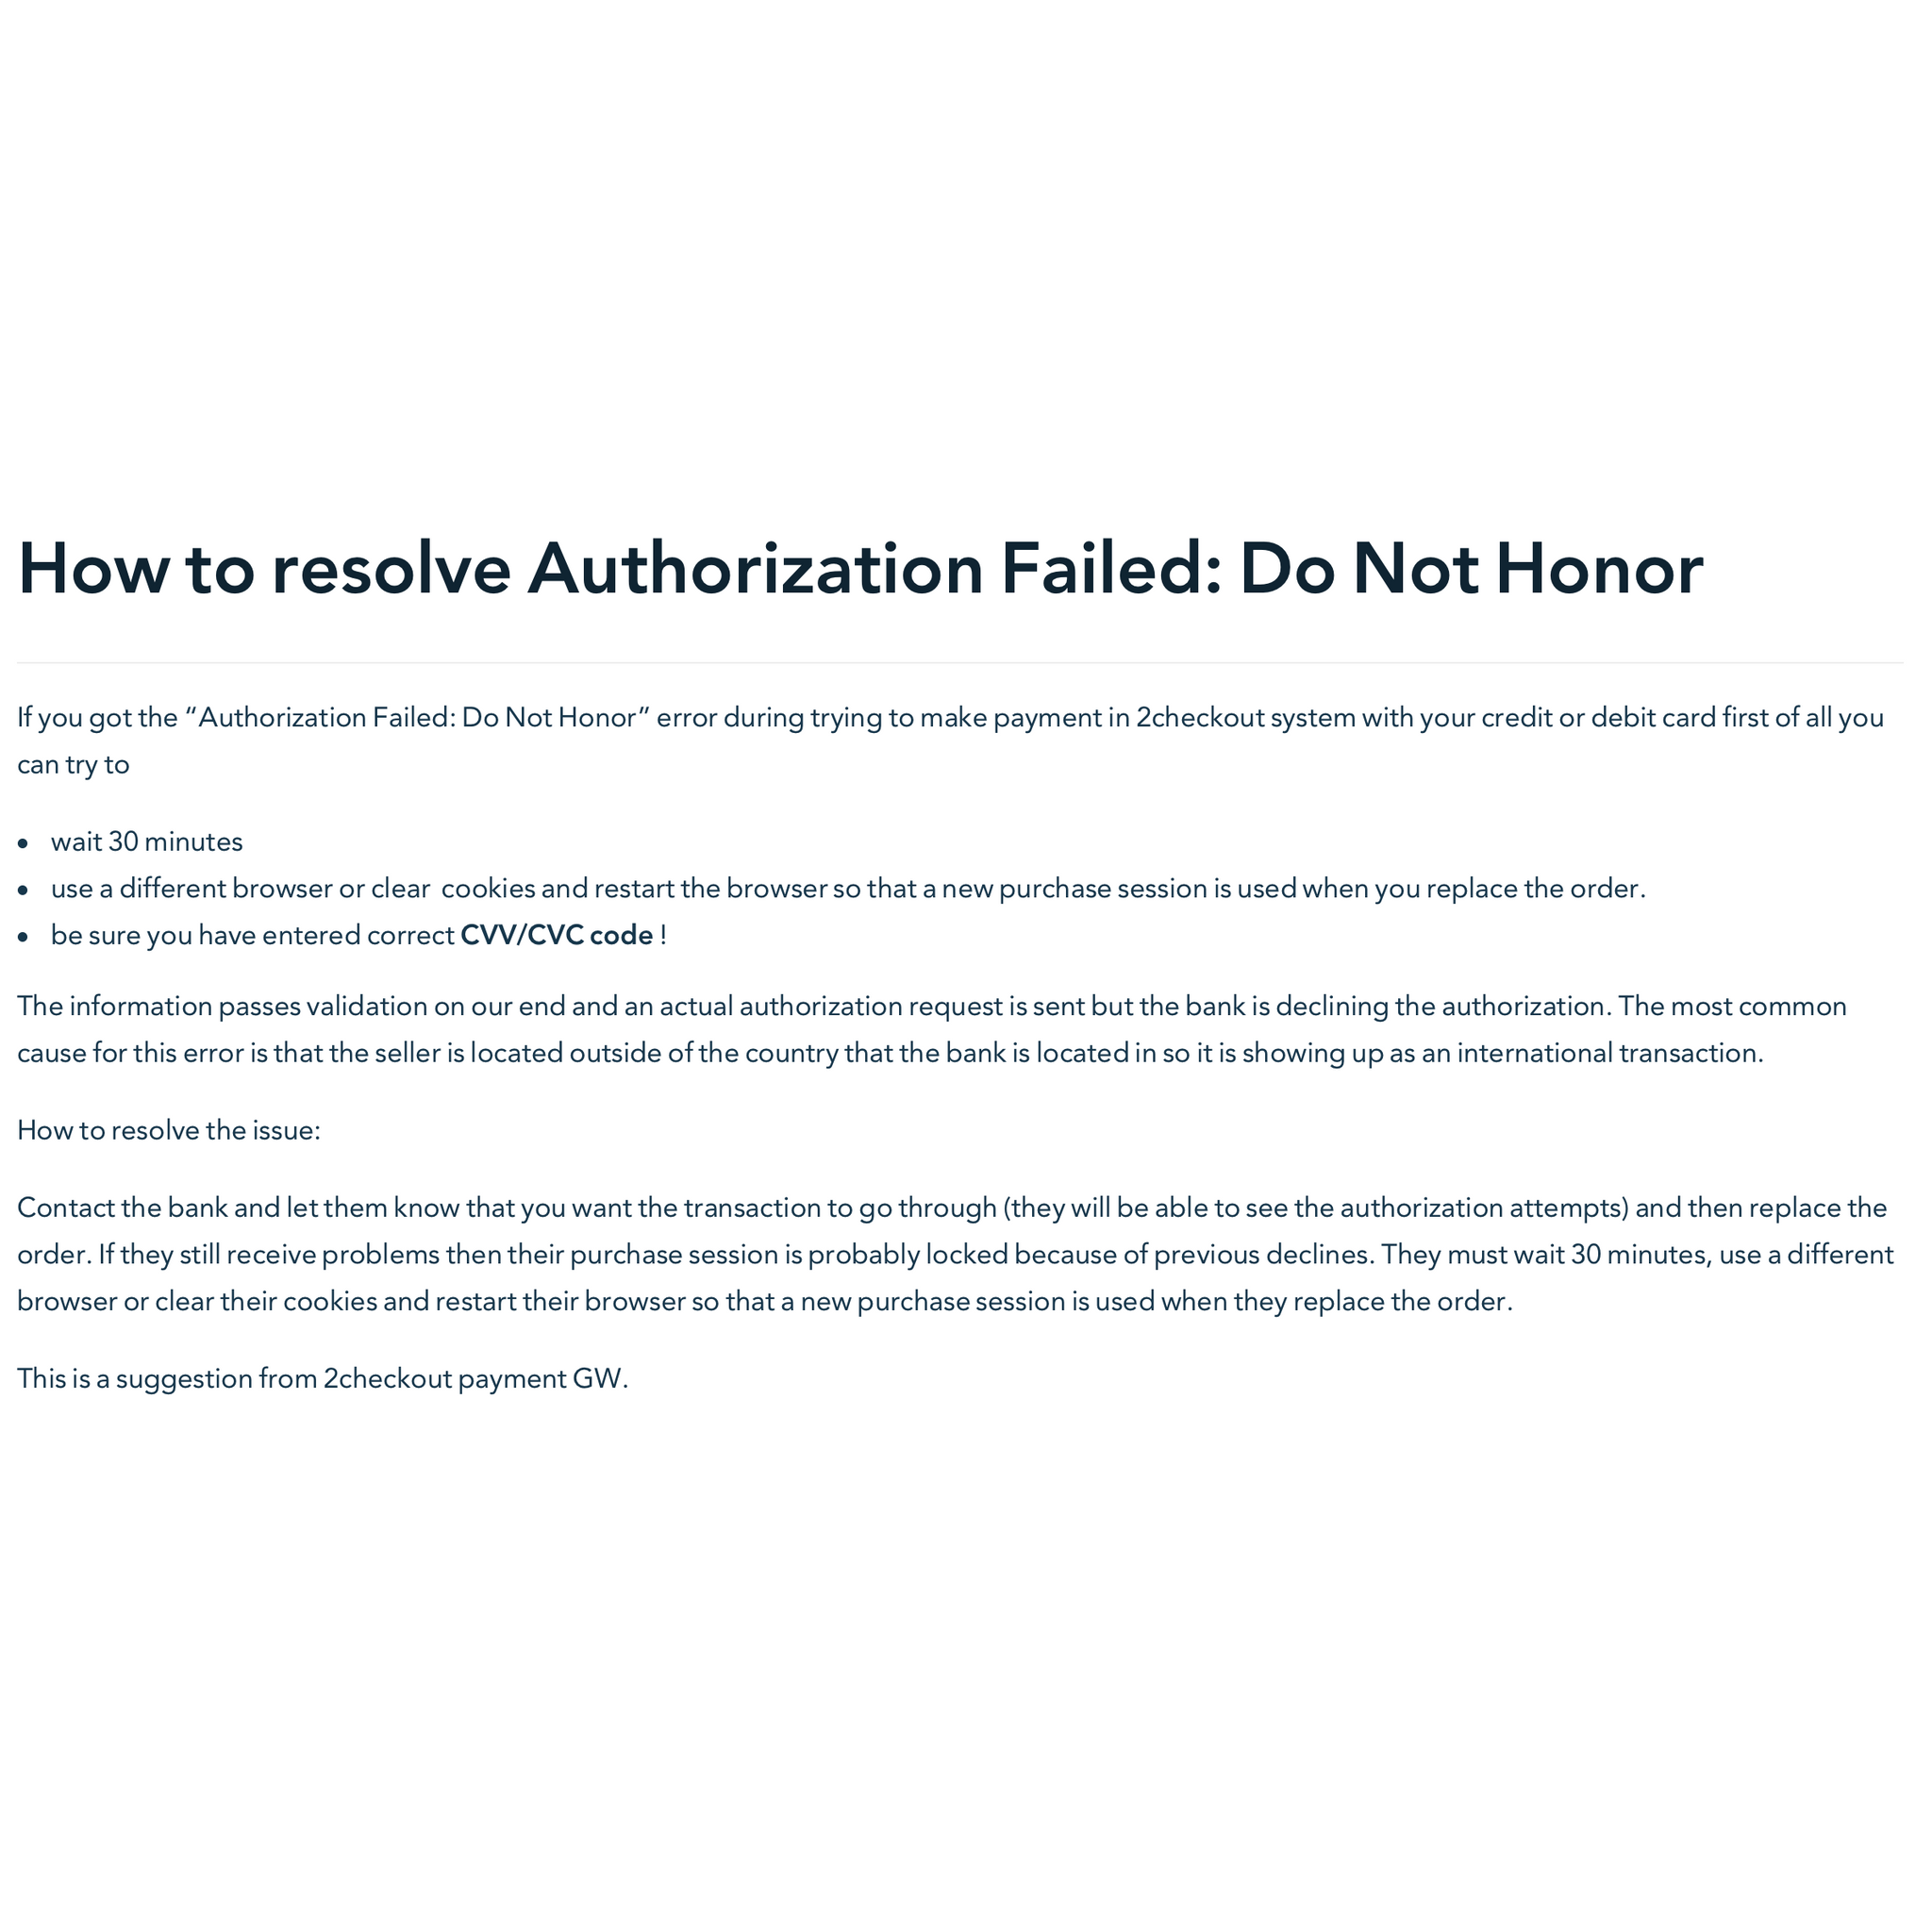 How to resolve Authorization Failed: Do Not Honor